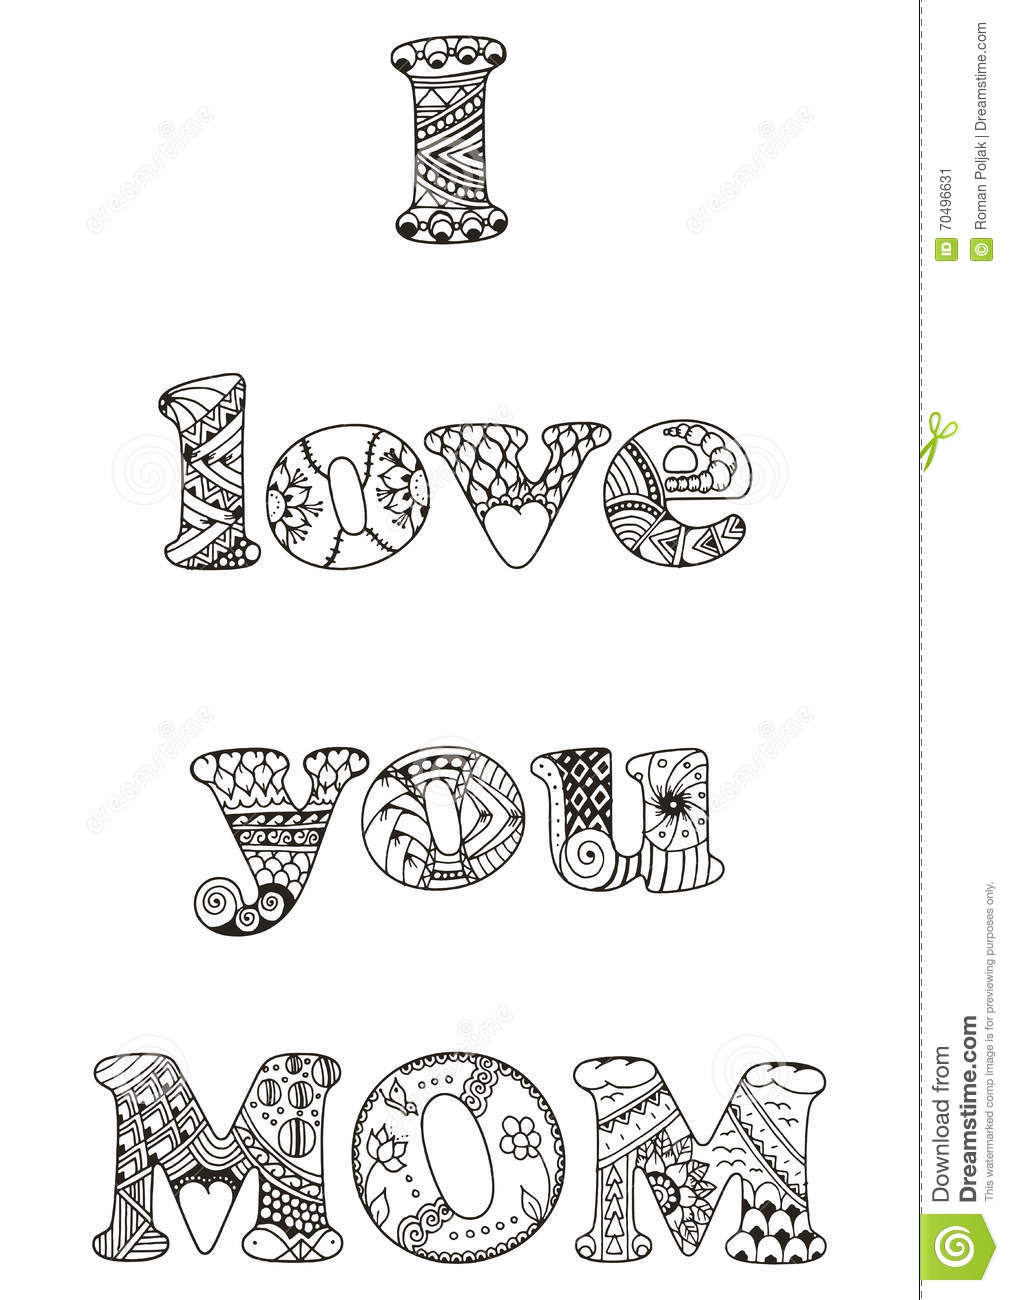 I Love You Mom Quotes I Love You Mom Quotezentangle Stylized Vector Illustration